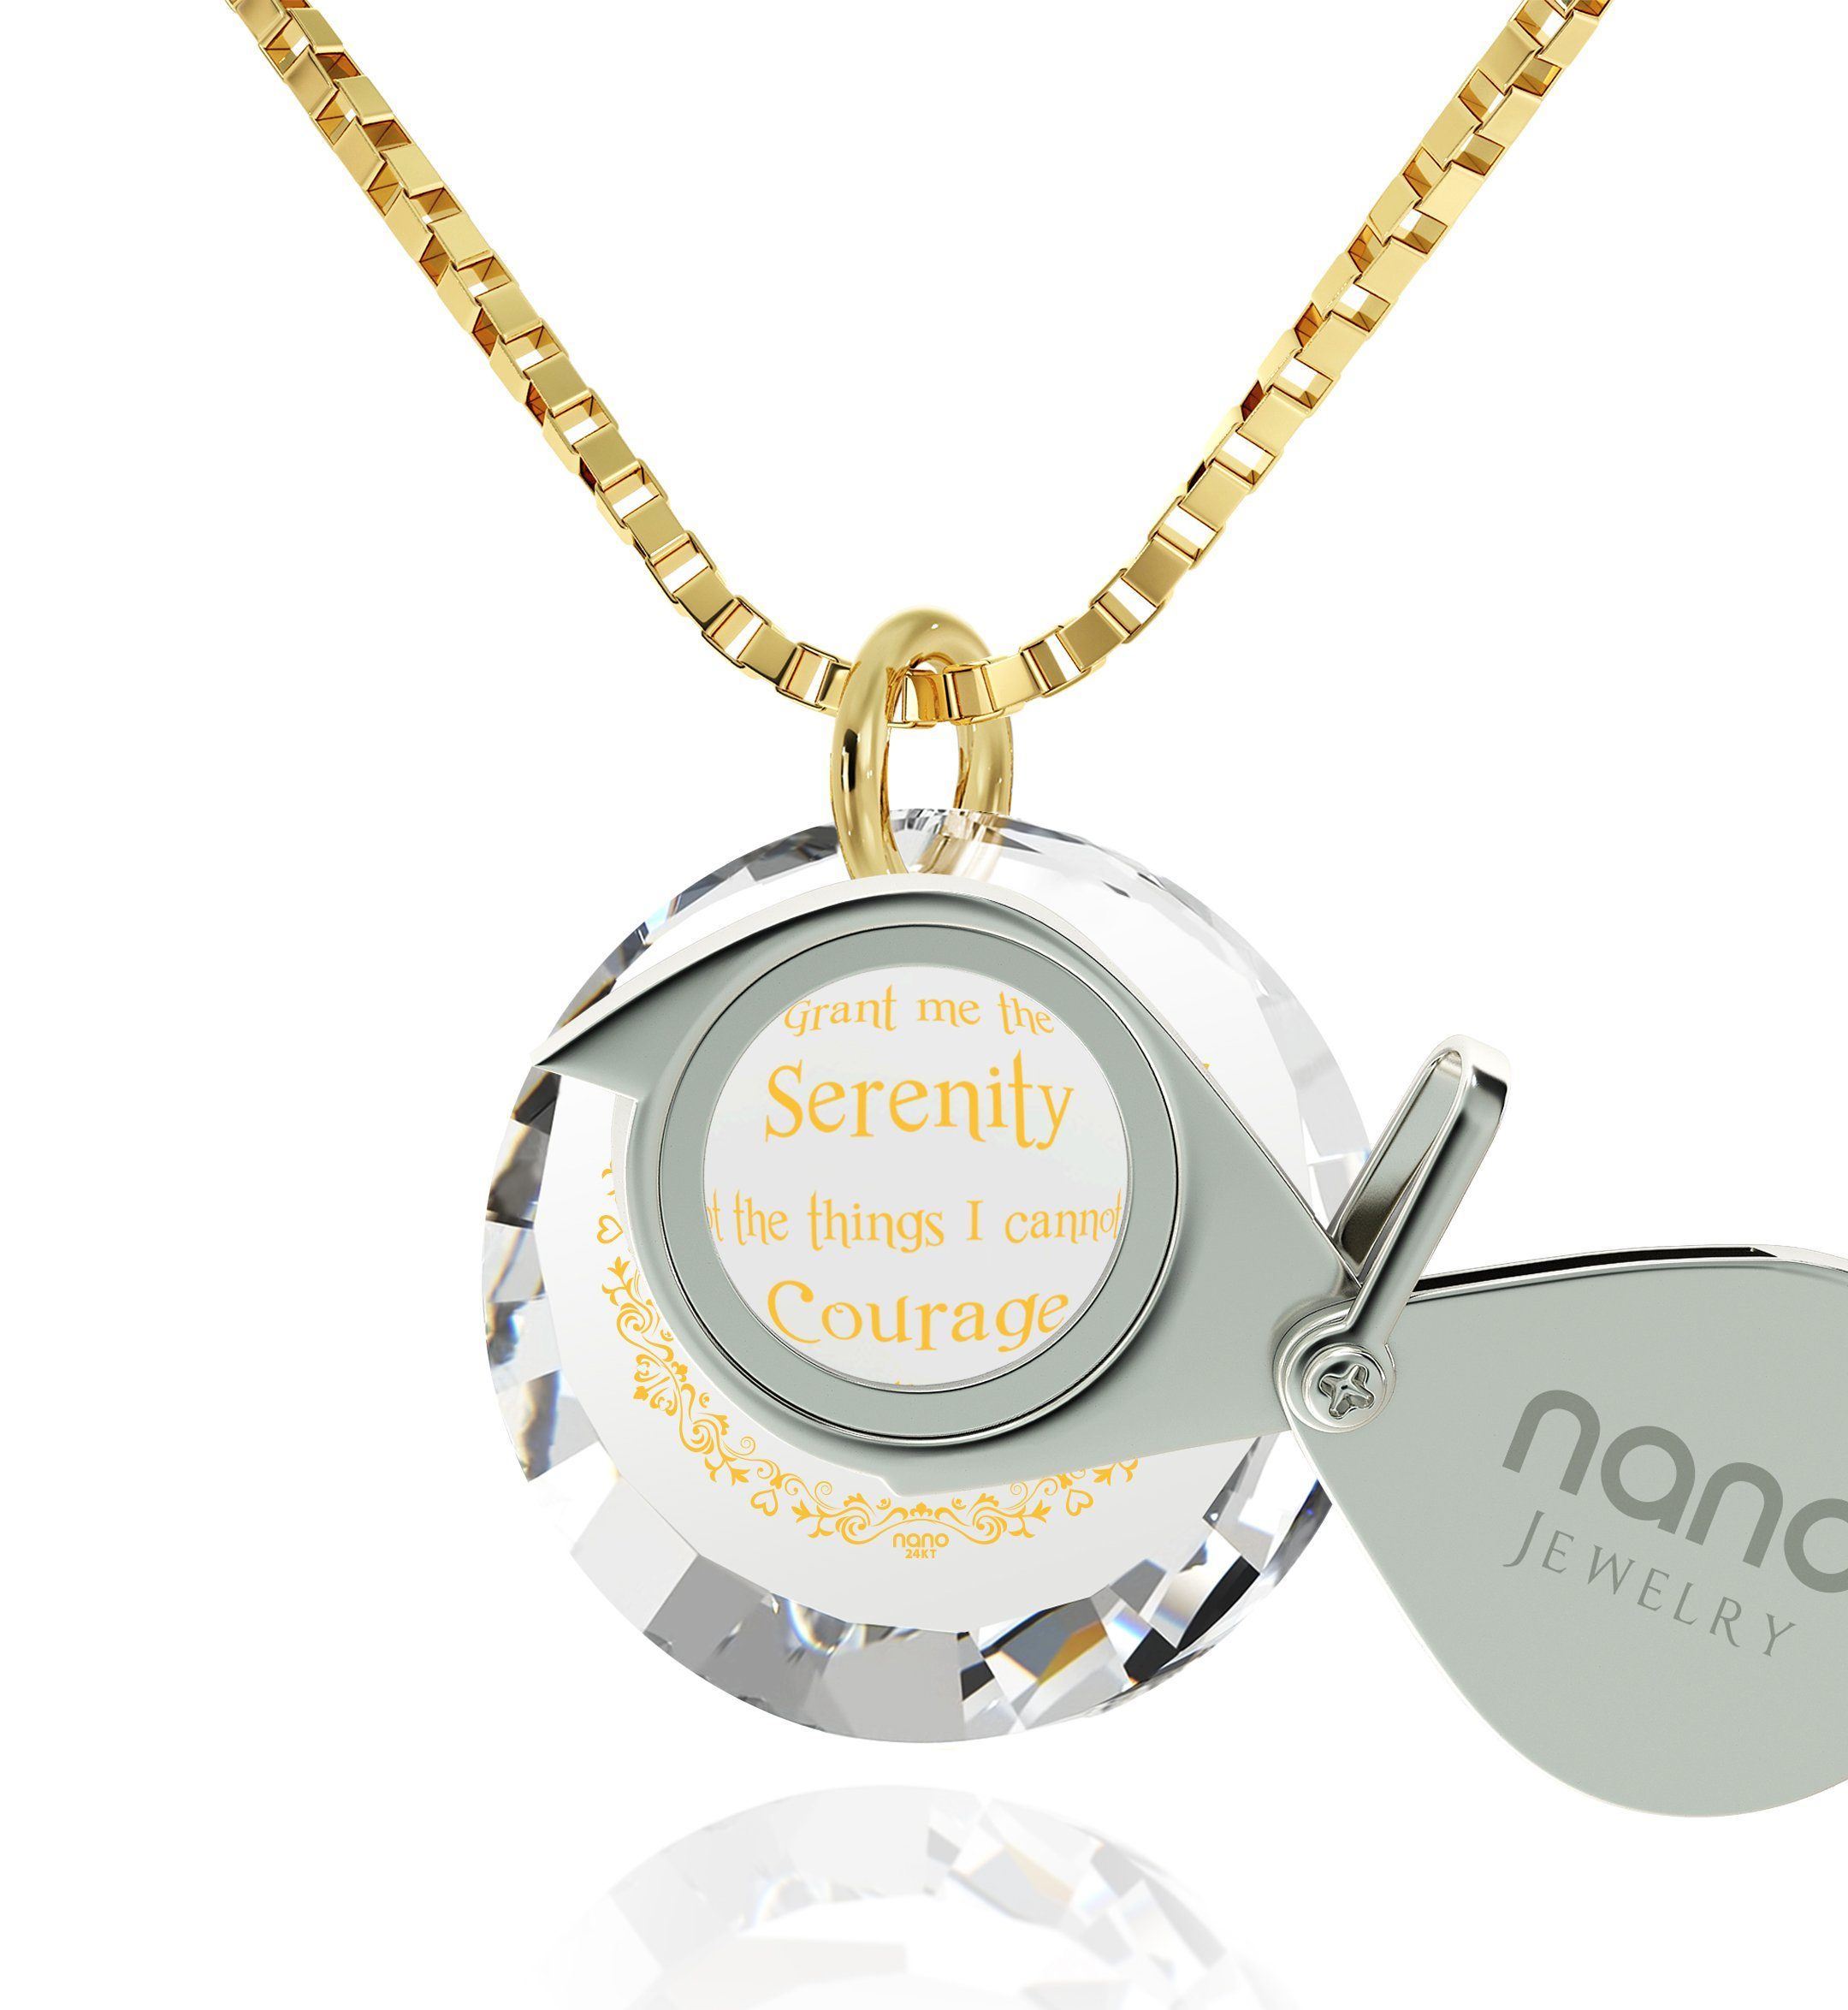 Serenity Prayer Necklace: Top Gifts for Wife, Women's Gold Jewelry, Nano Jewelry